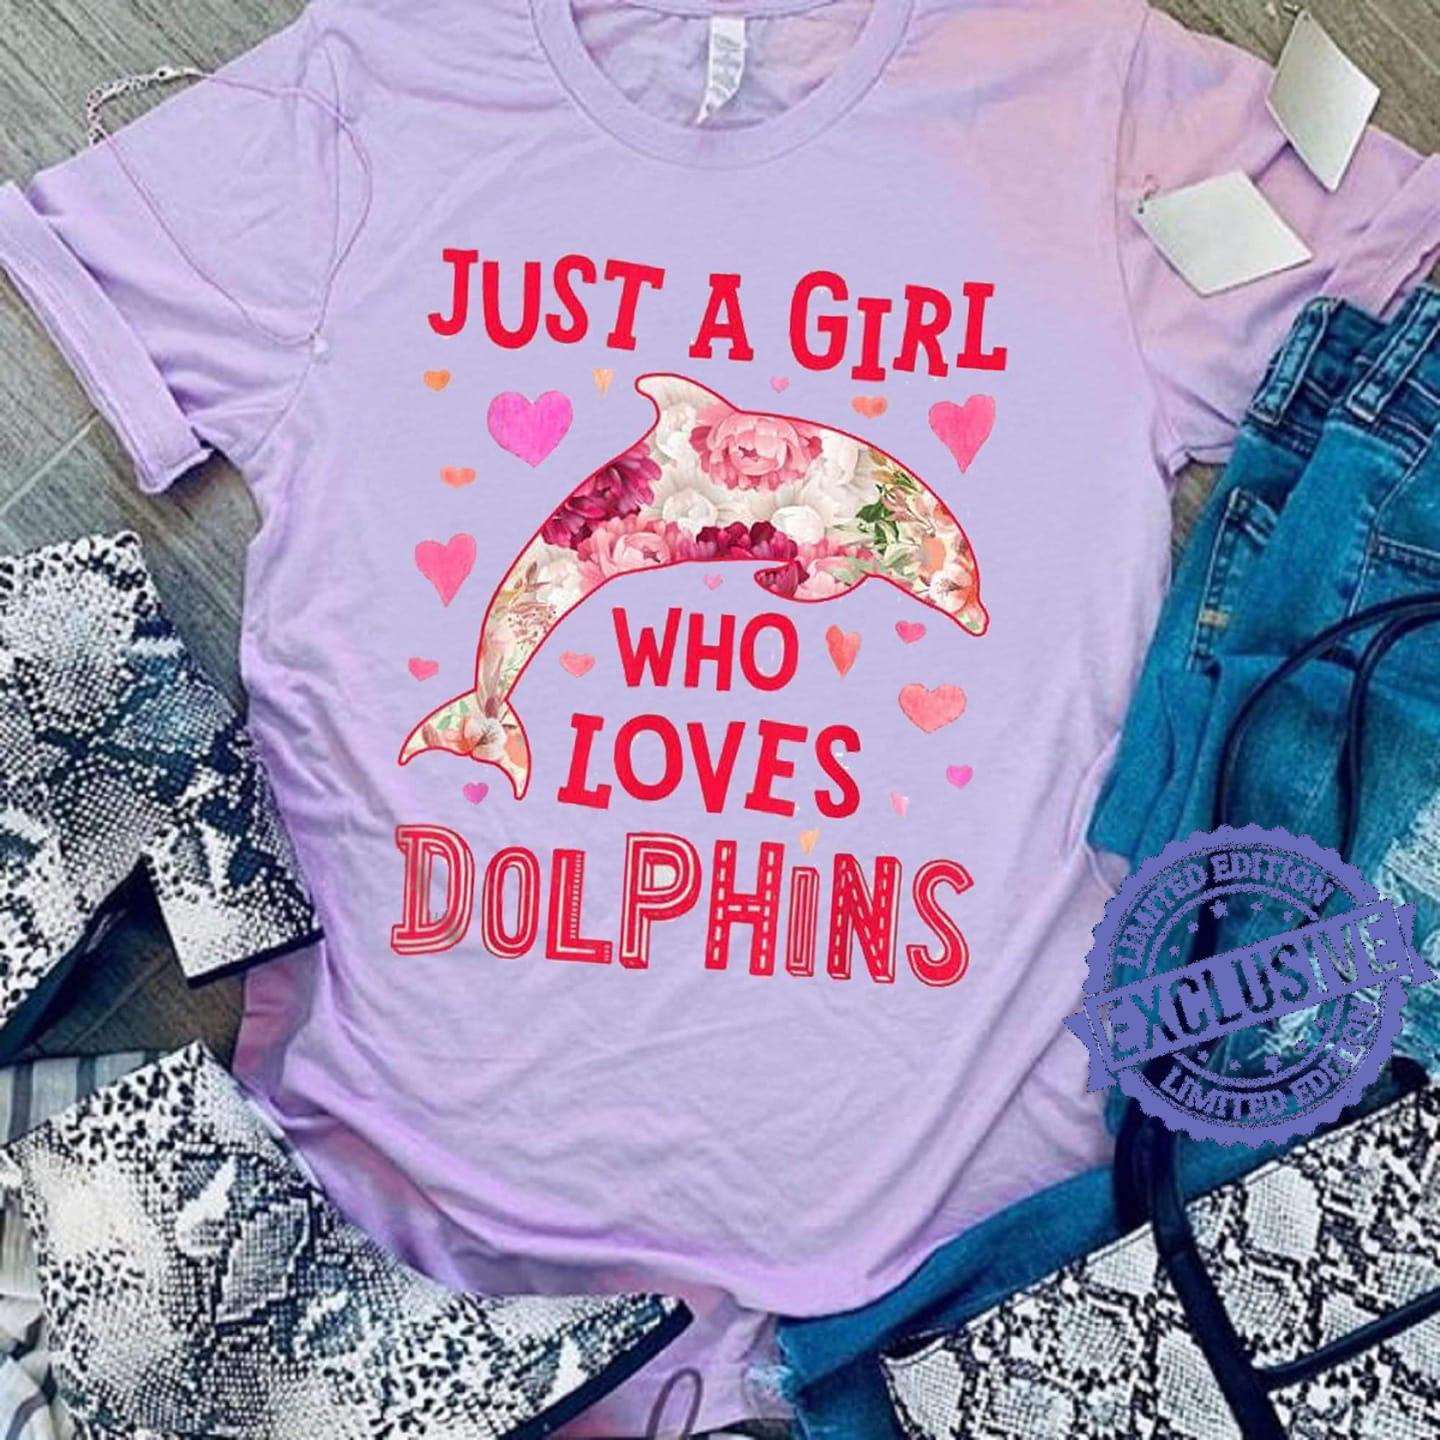 Just a girl who loves dolphins shirt